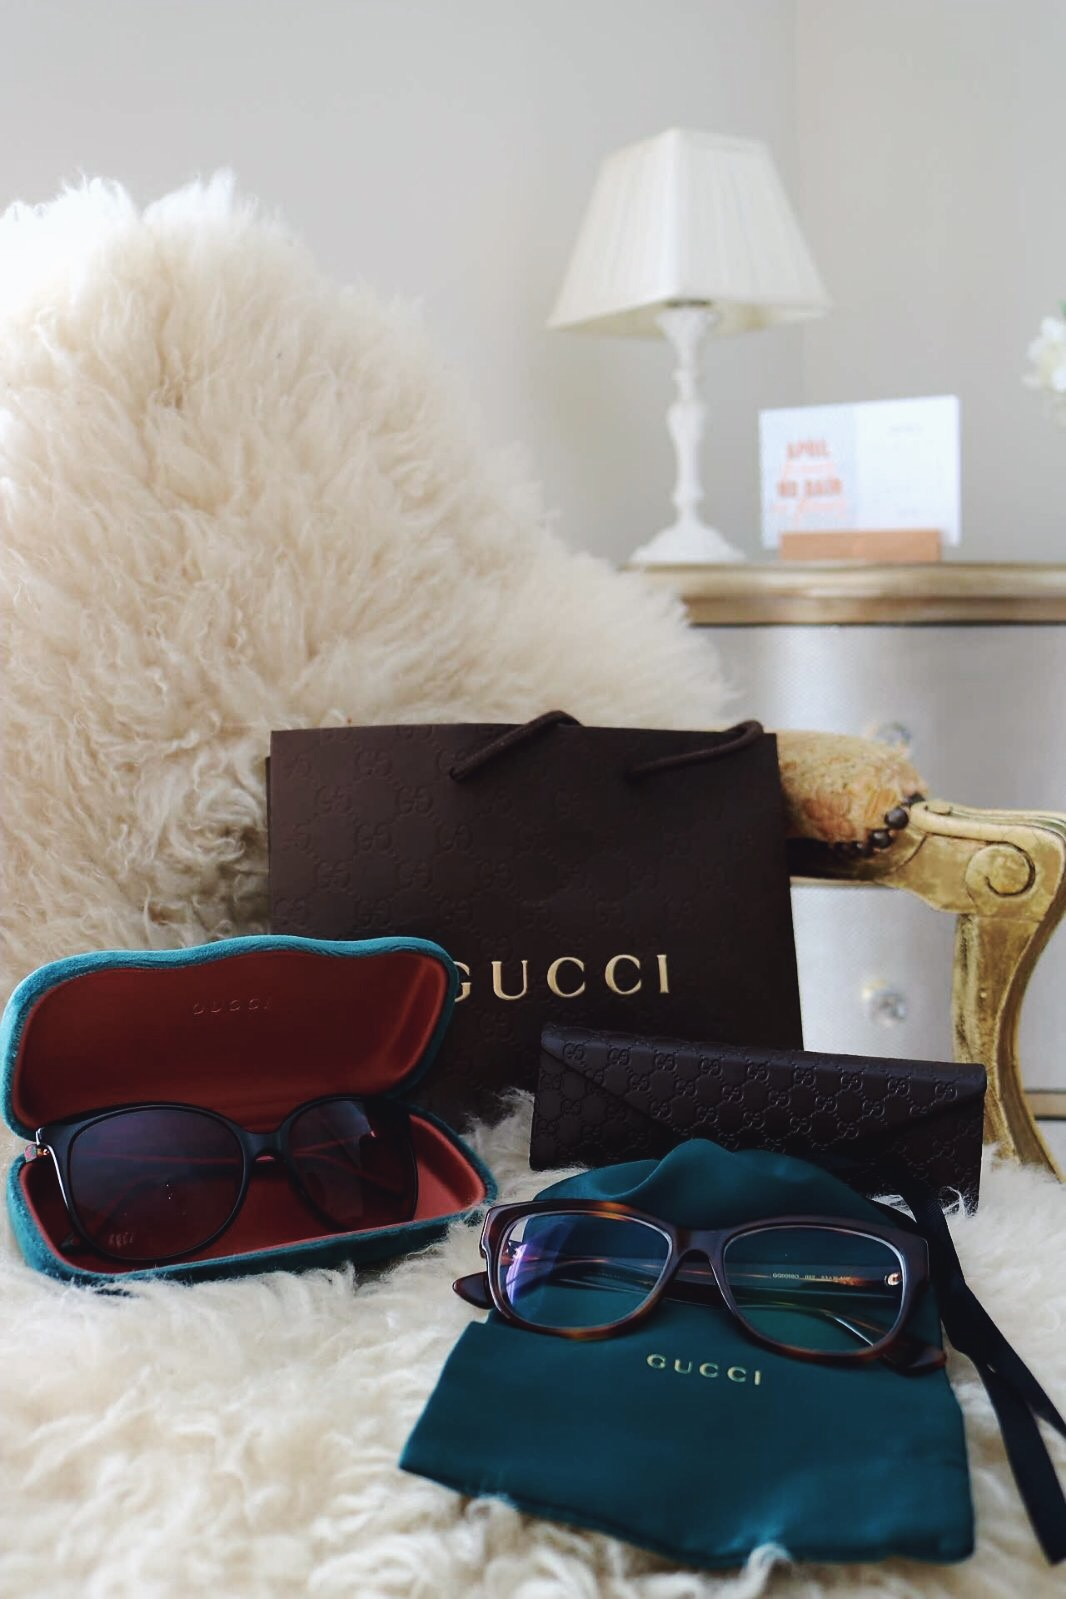 Gucci glasses and Gucci sunglasses